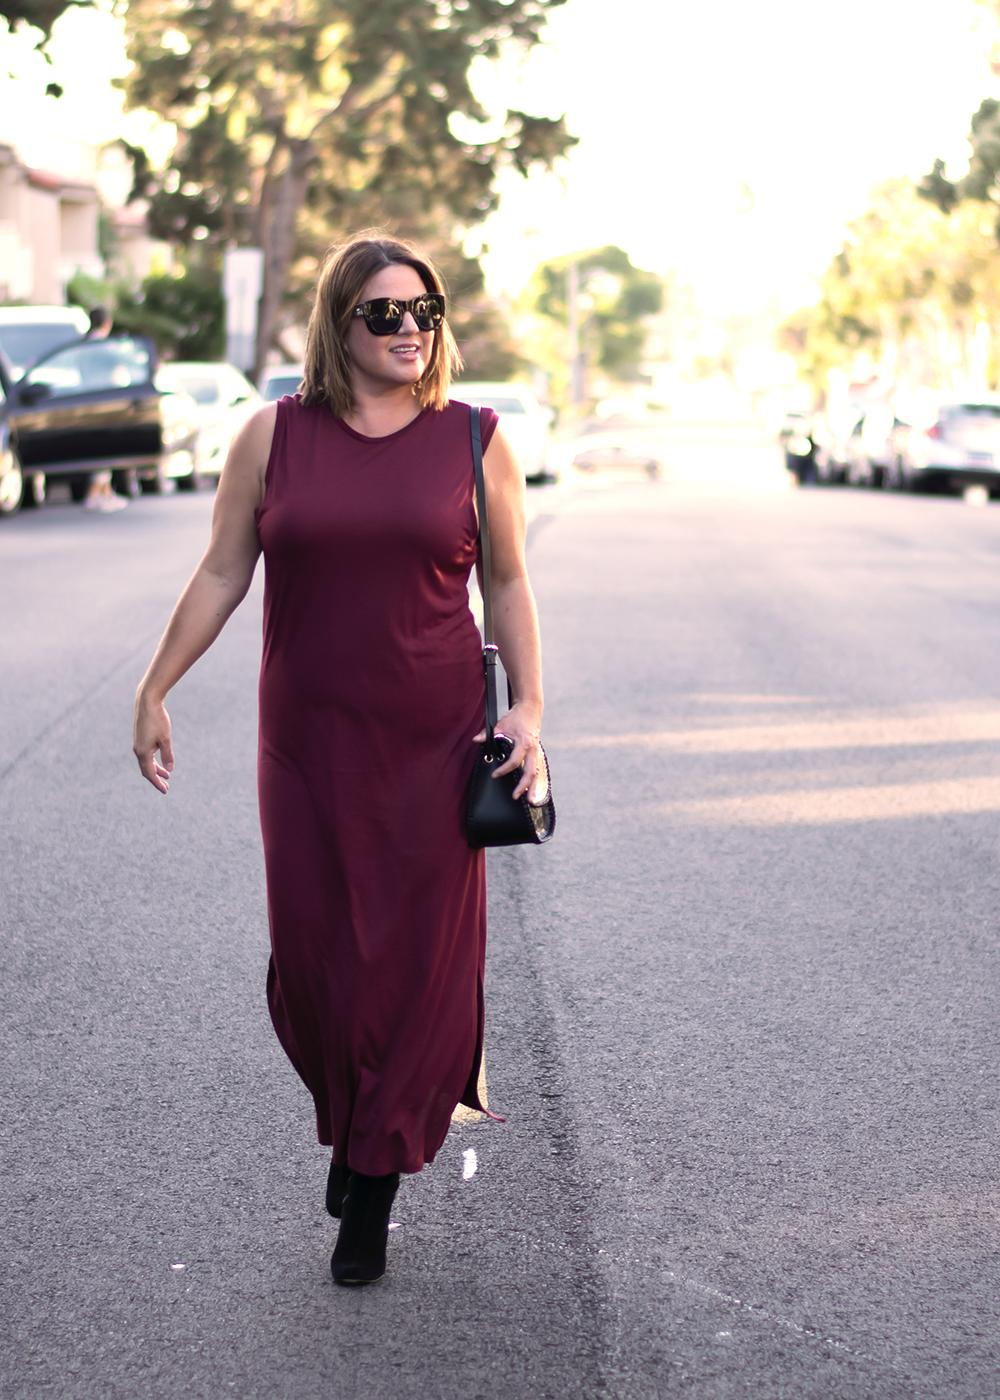 casual-outfit-los-angeles-fashion-street-style-blogger-personal-stylist-0539